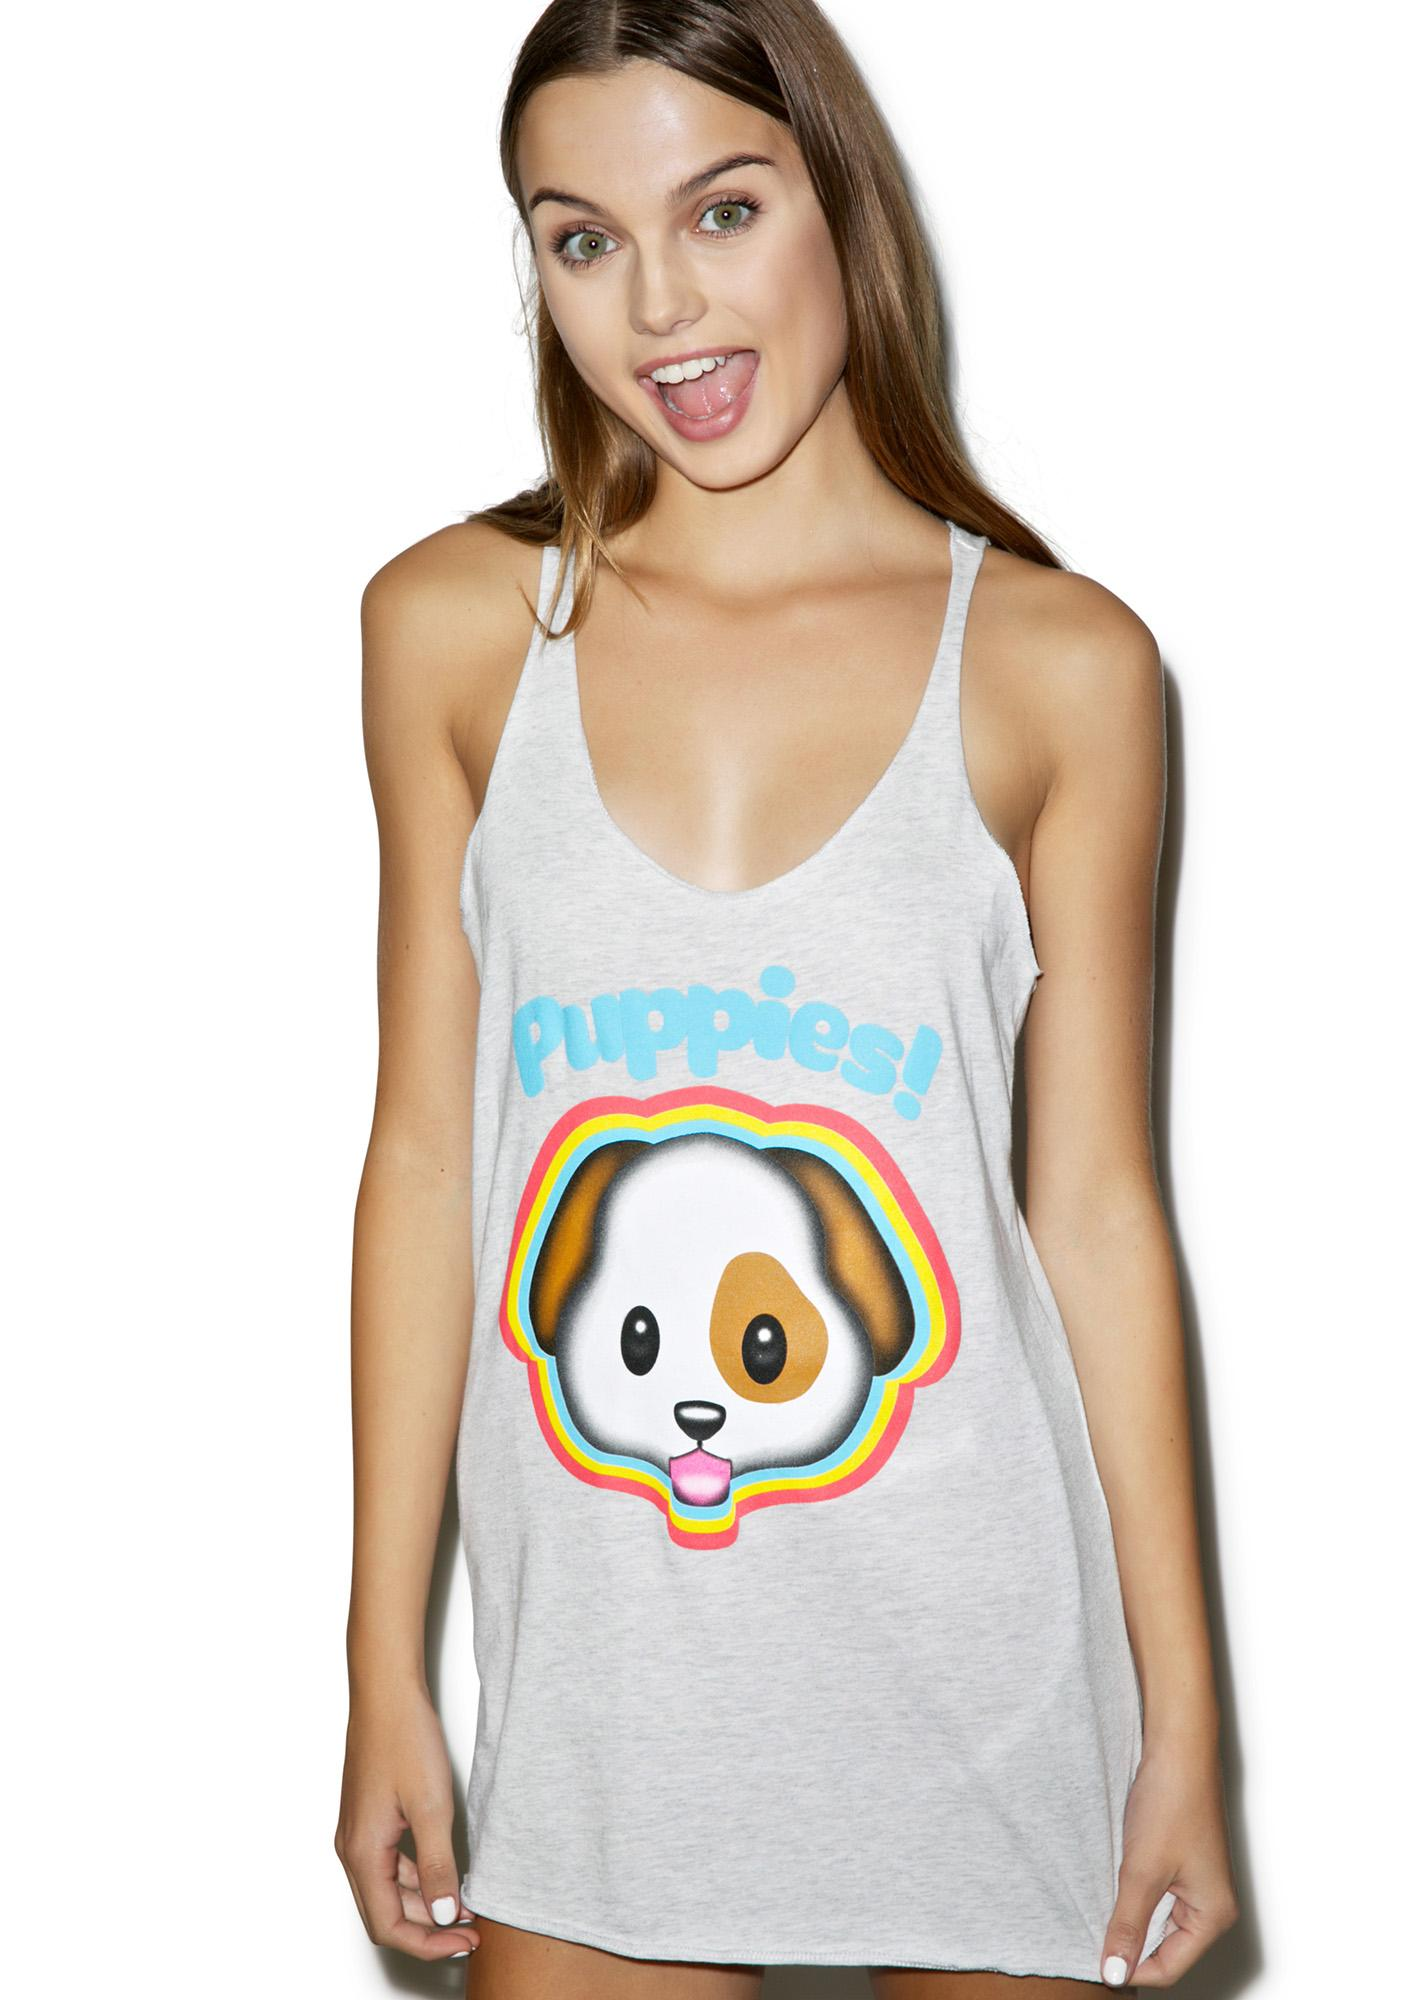 Puppies Make Me Happy Emojeez Tank Top